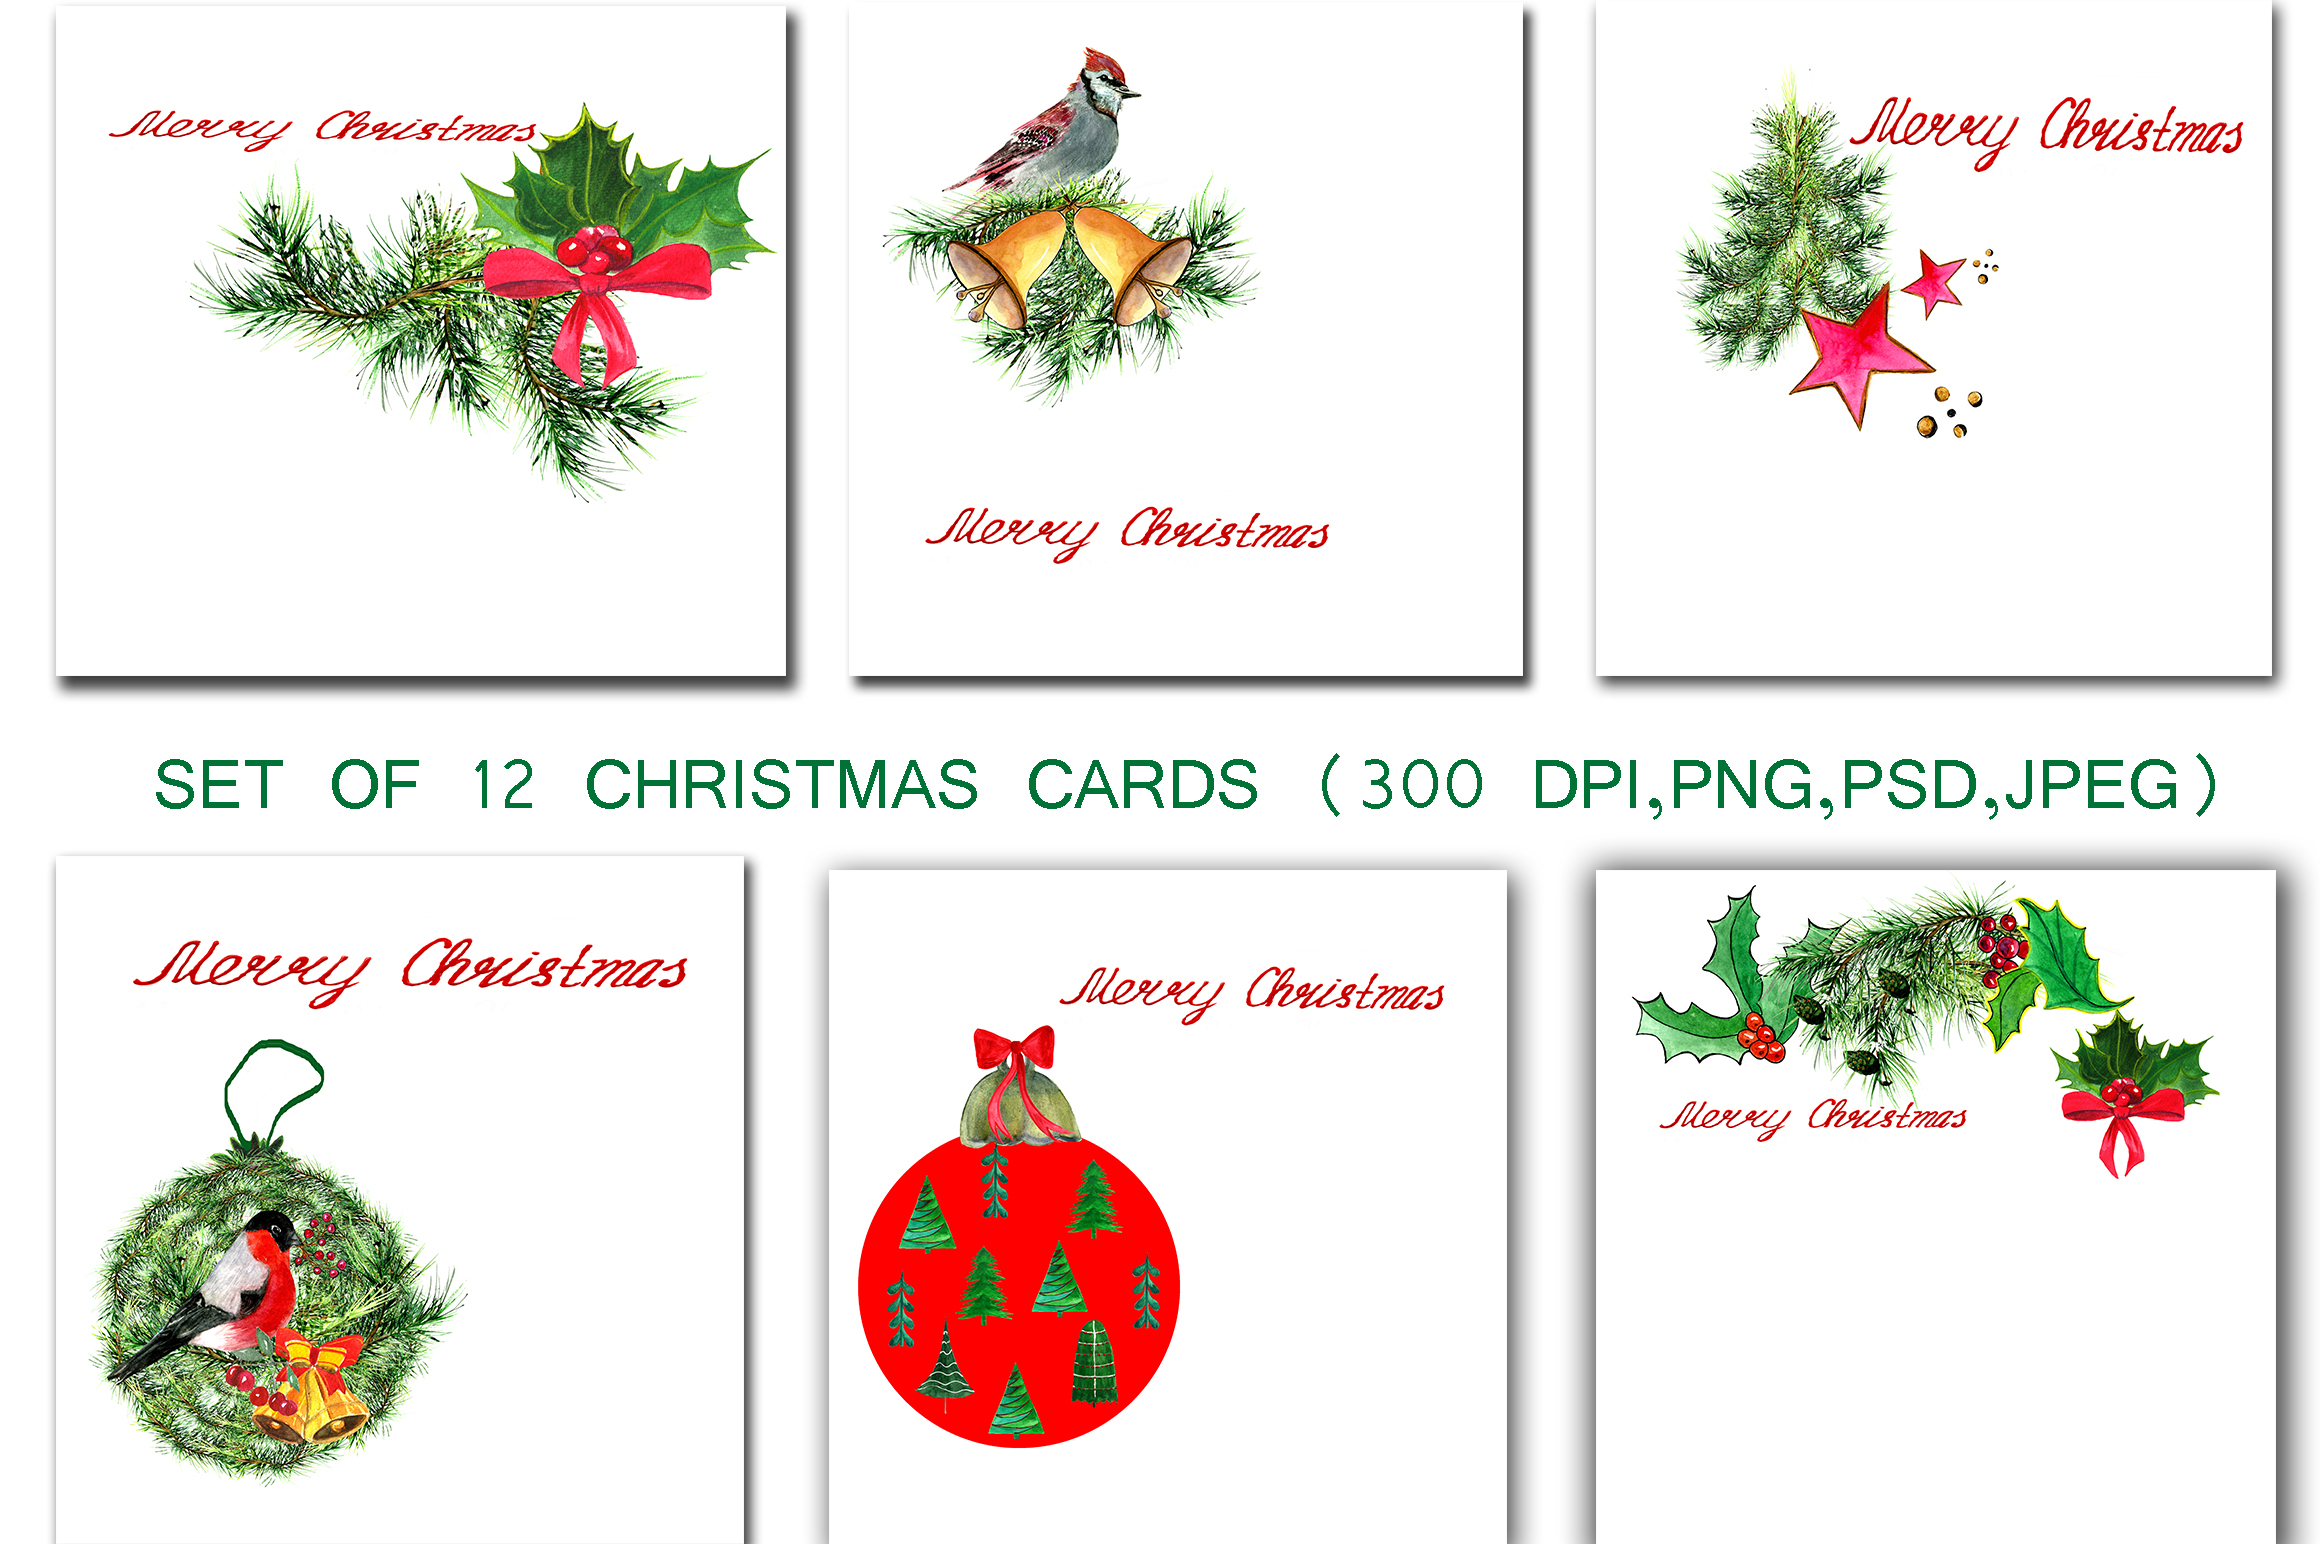 Set of greeting Christmas cards example image 2